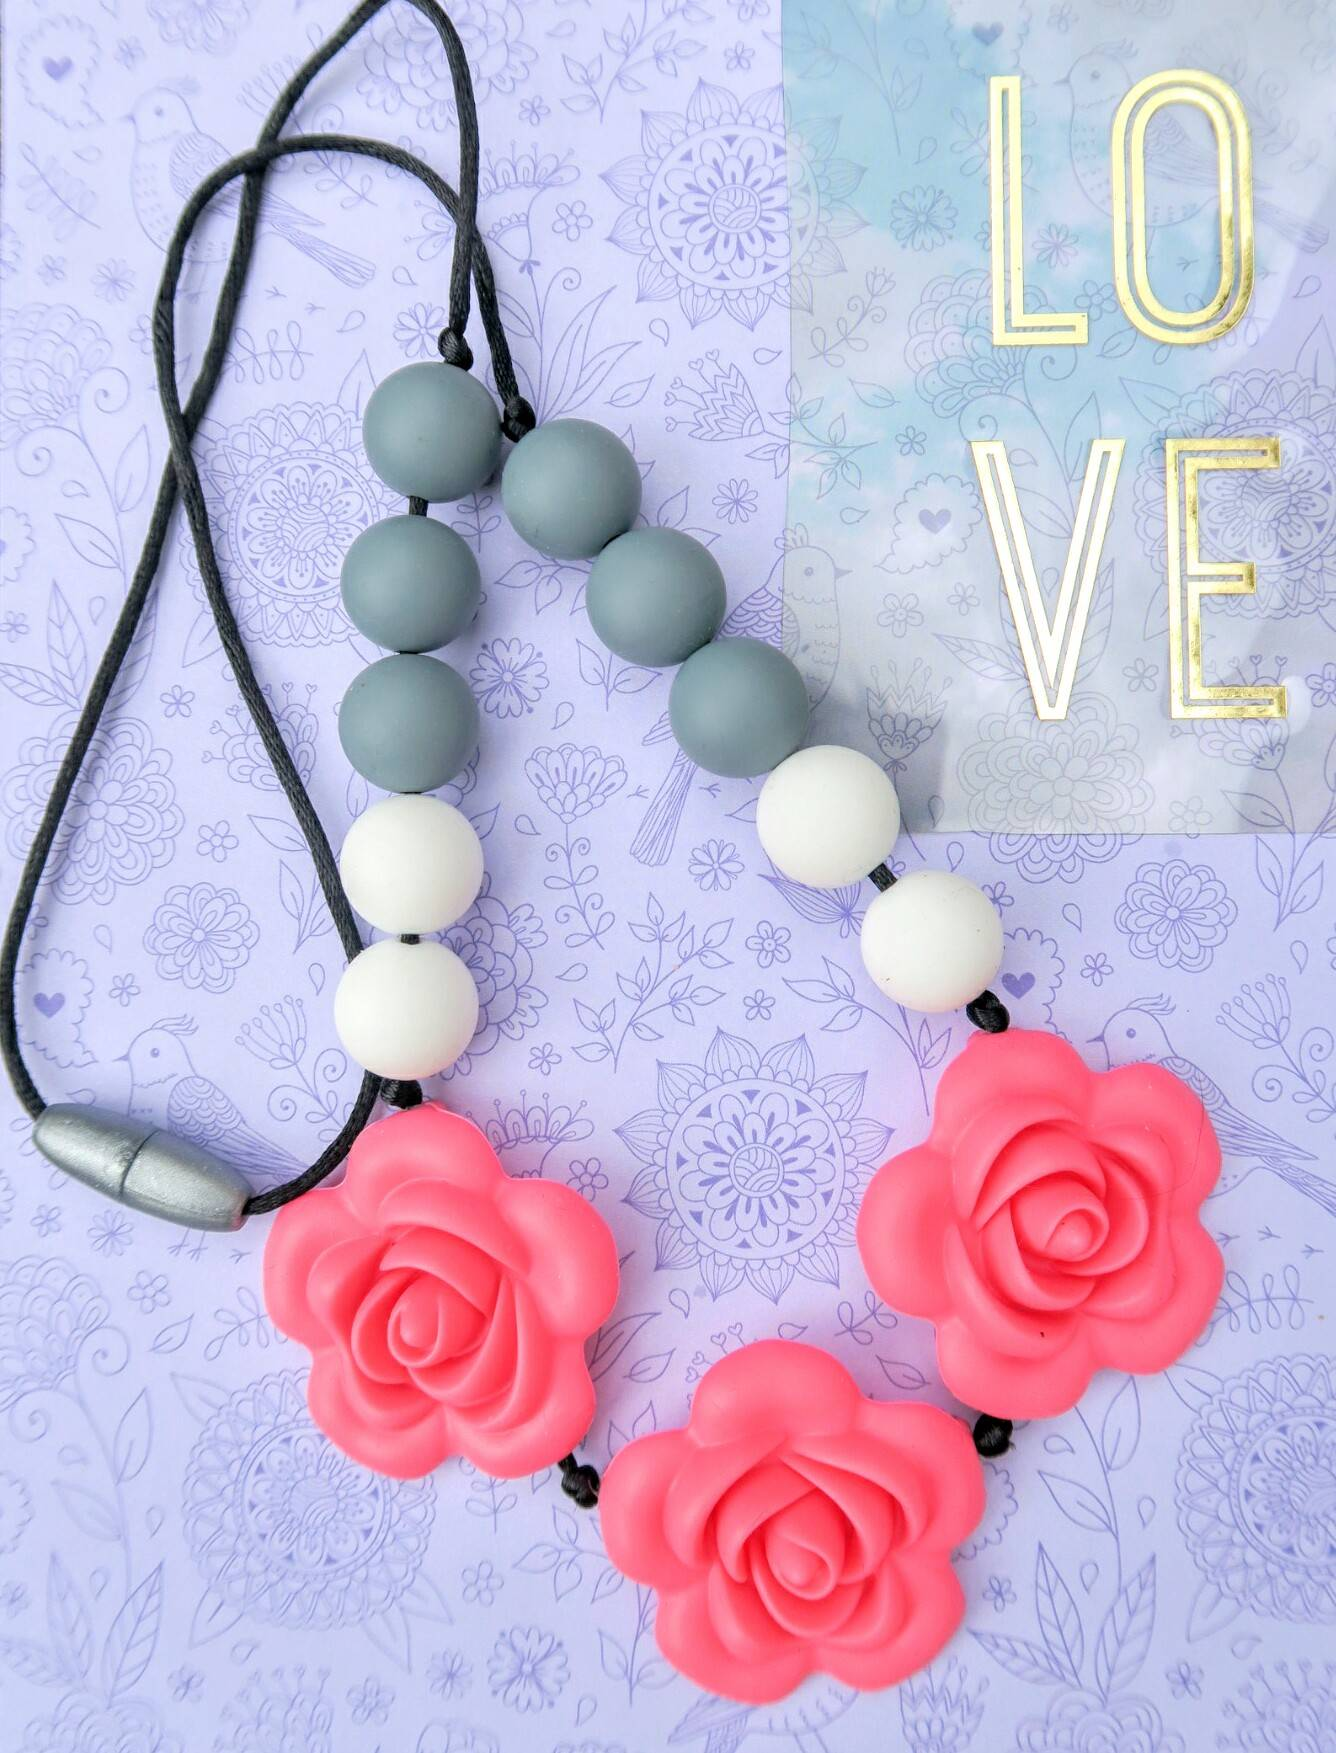 These gorgeous necklaces are actually teething necklaces, safe for Baby to chew on.